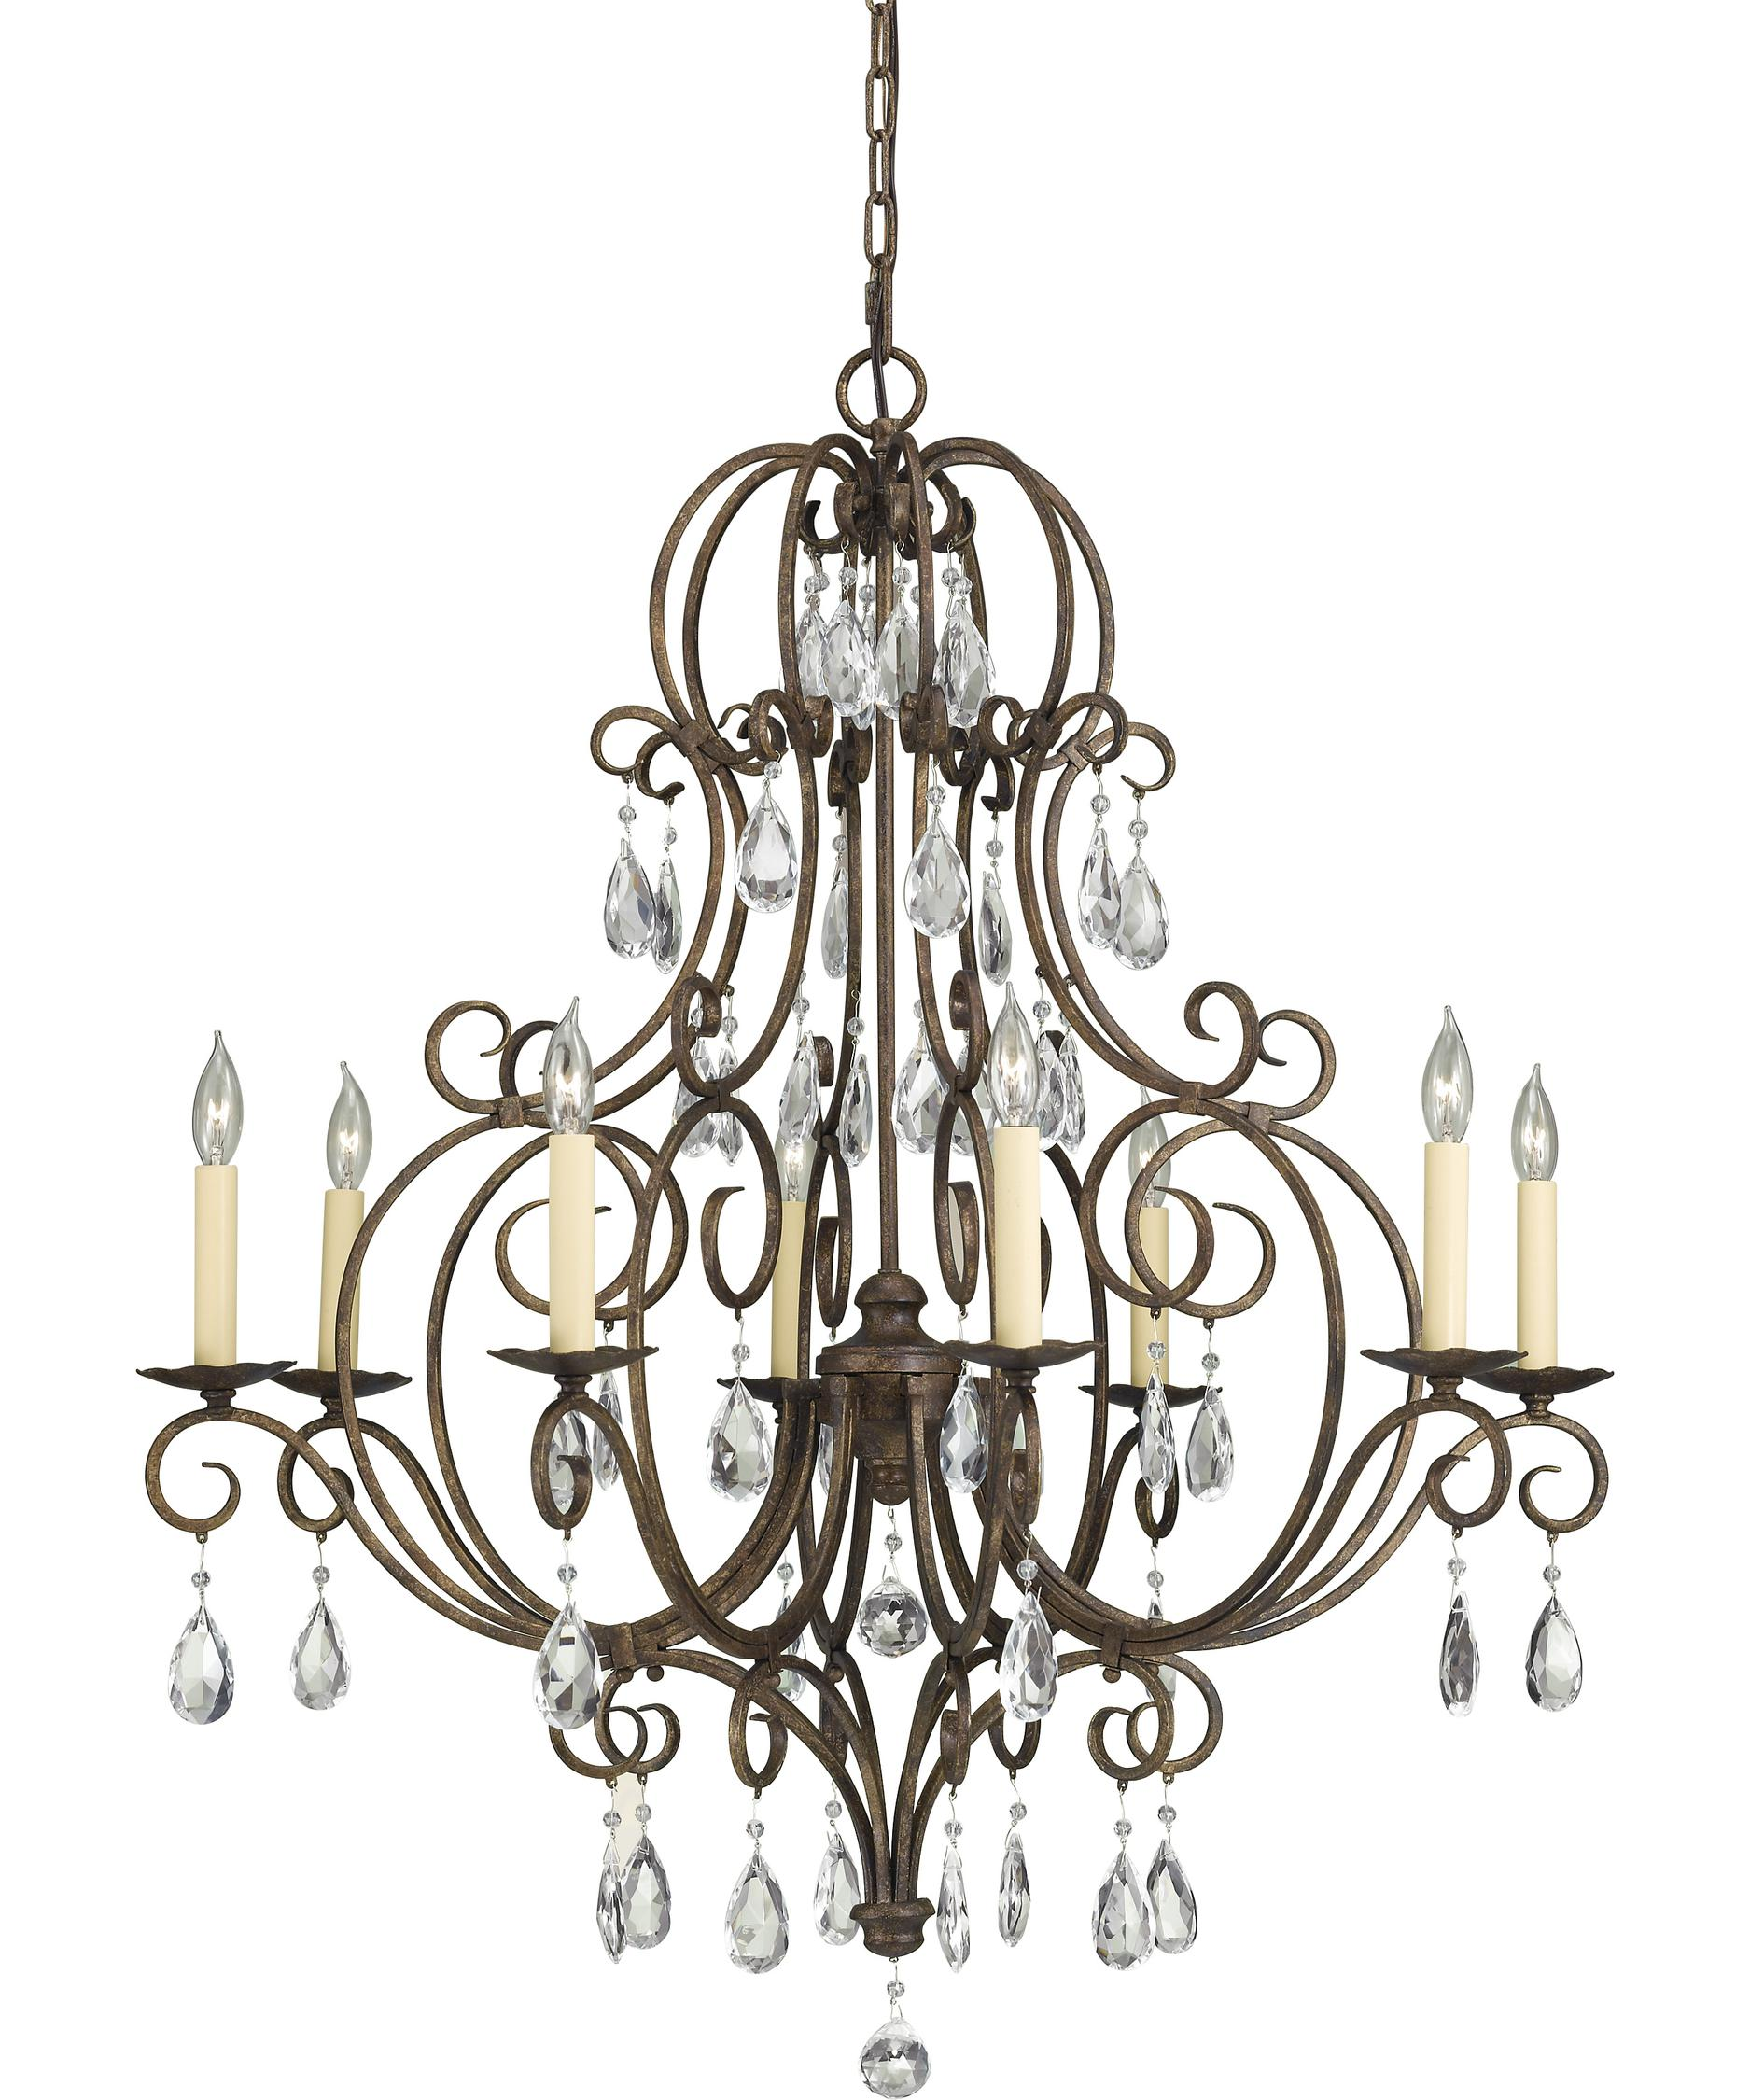 Murray feiss chateau chandelier murray feiss f2303 8mbz chateau 8 murray feiss chateau chandelier murray feiss f2303 8 chateau 32 inch chandelier capitol aloadofball Gallery